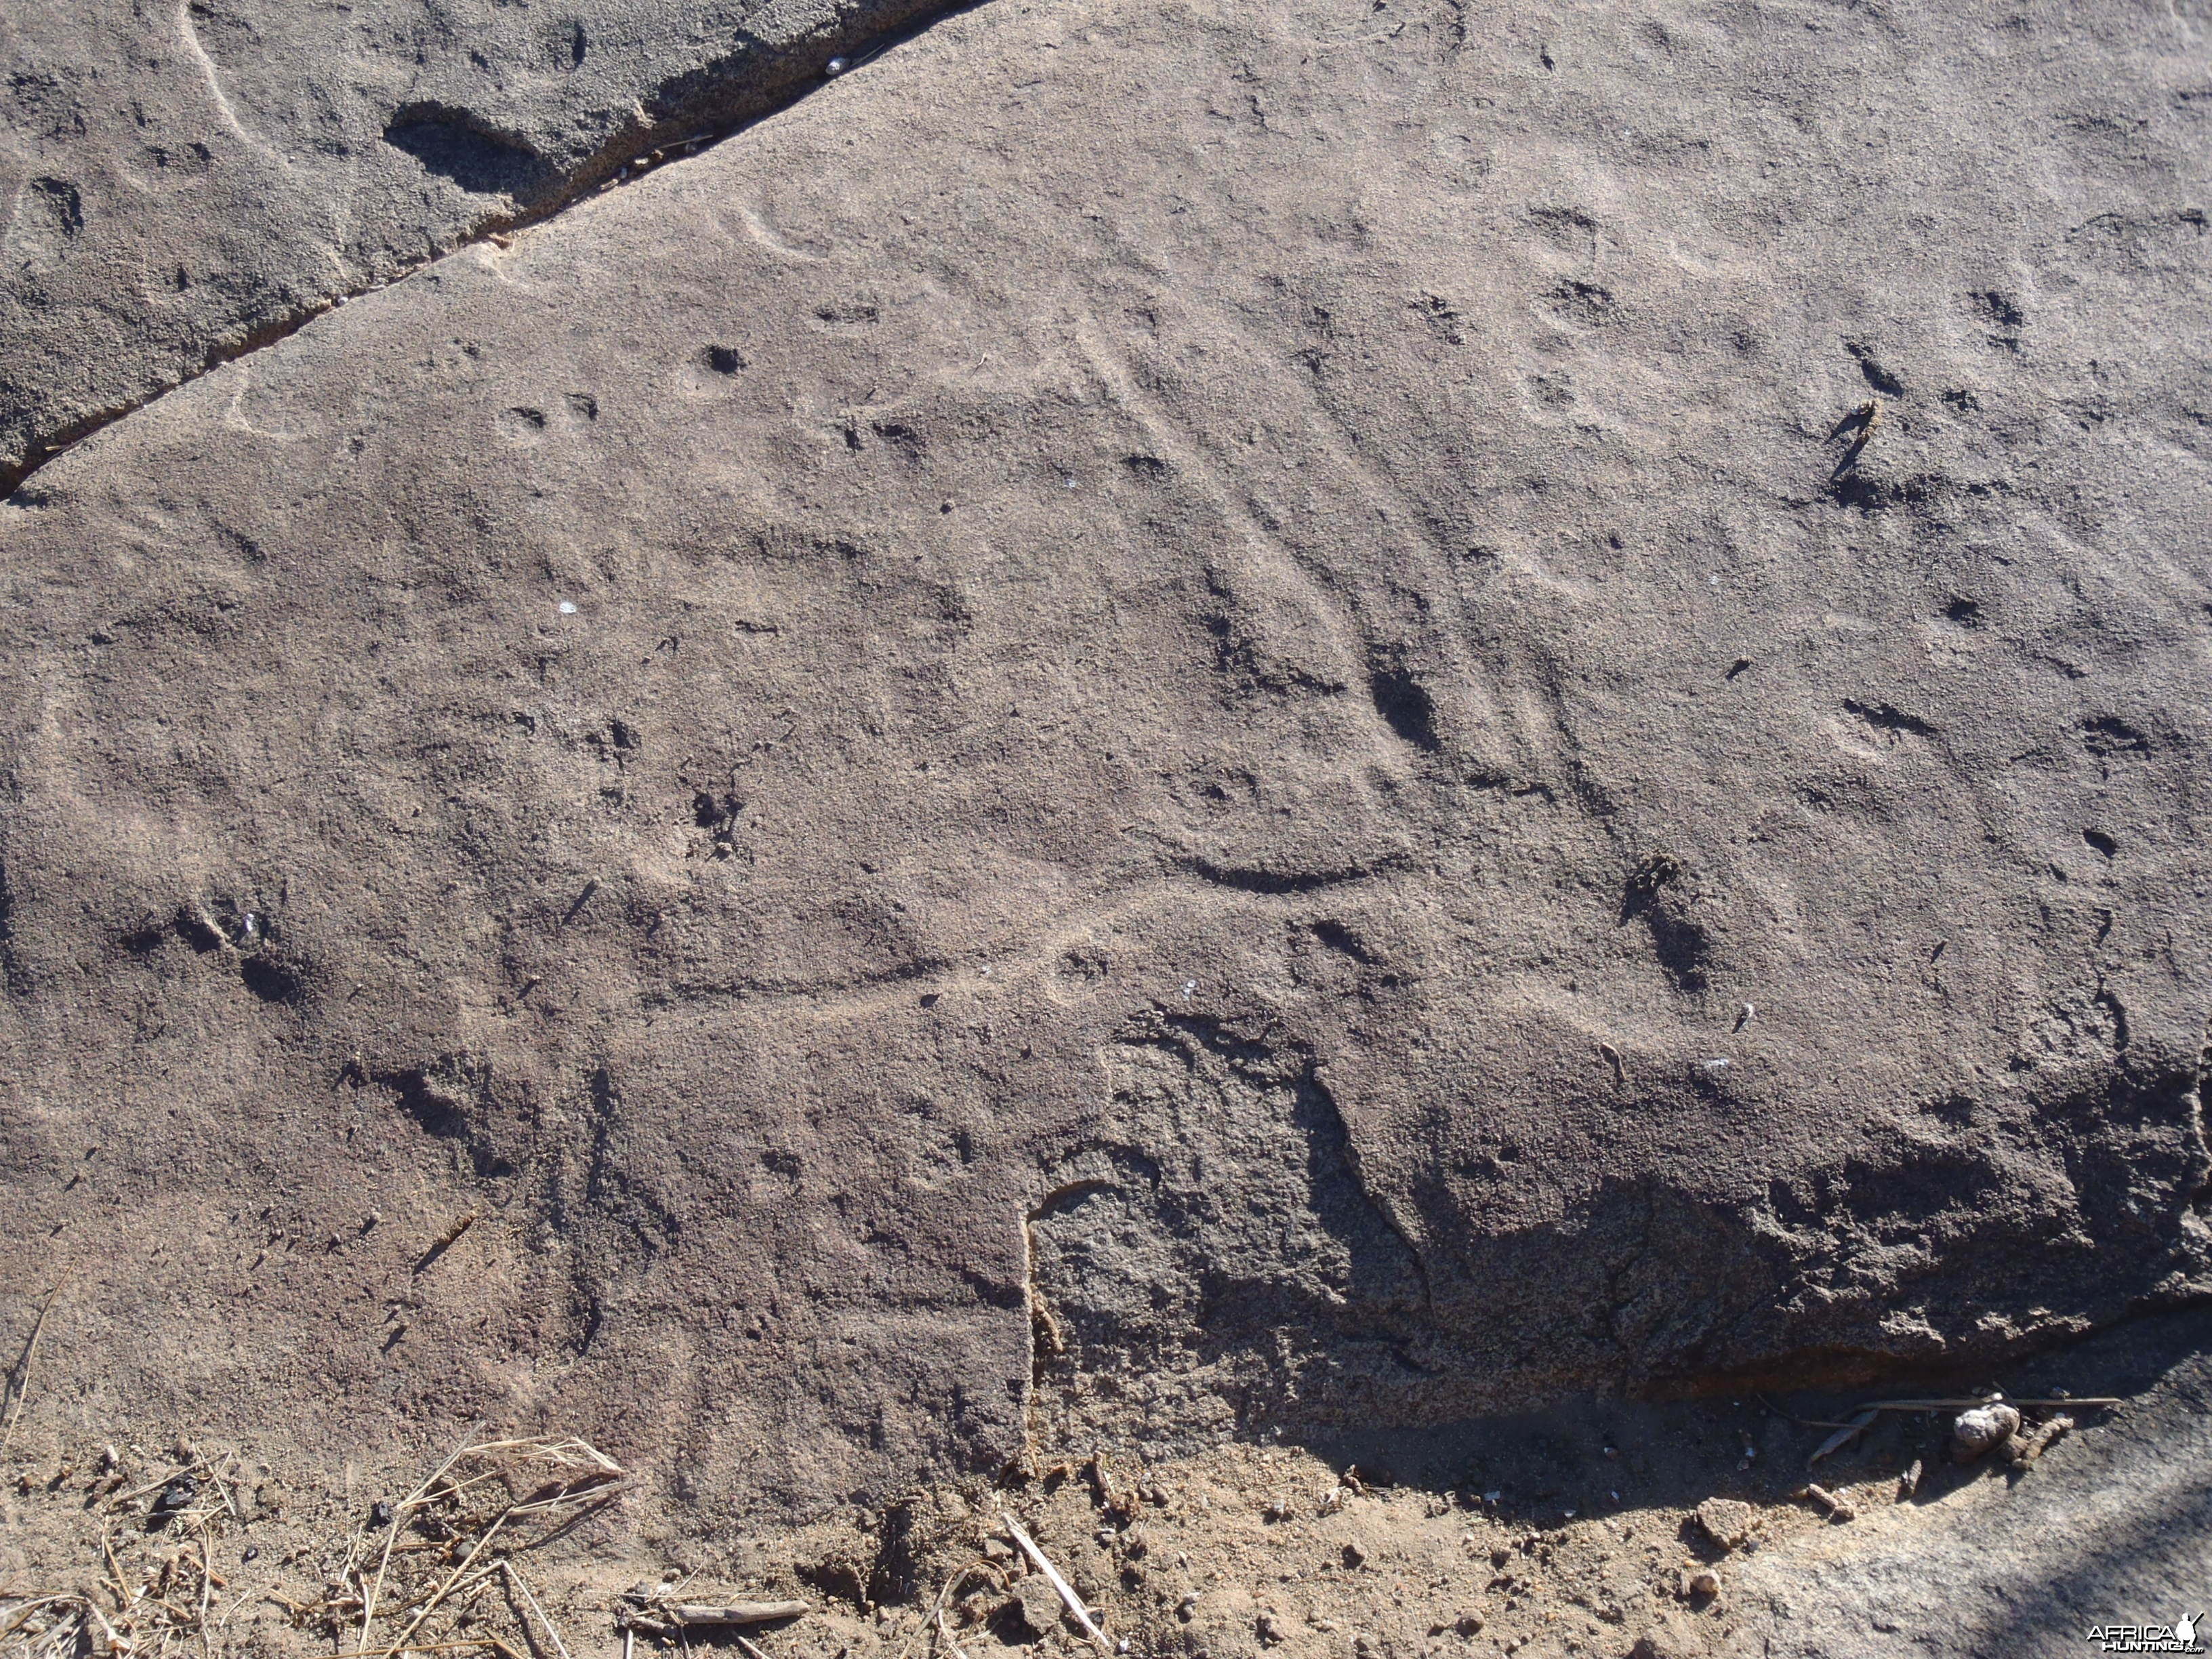 Bushman rock engraving of Gemsbok in Namibia